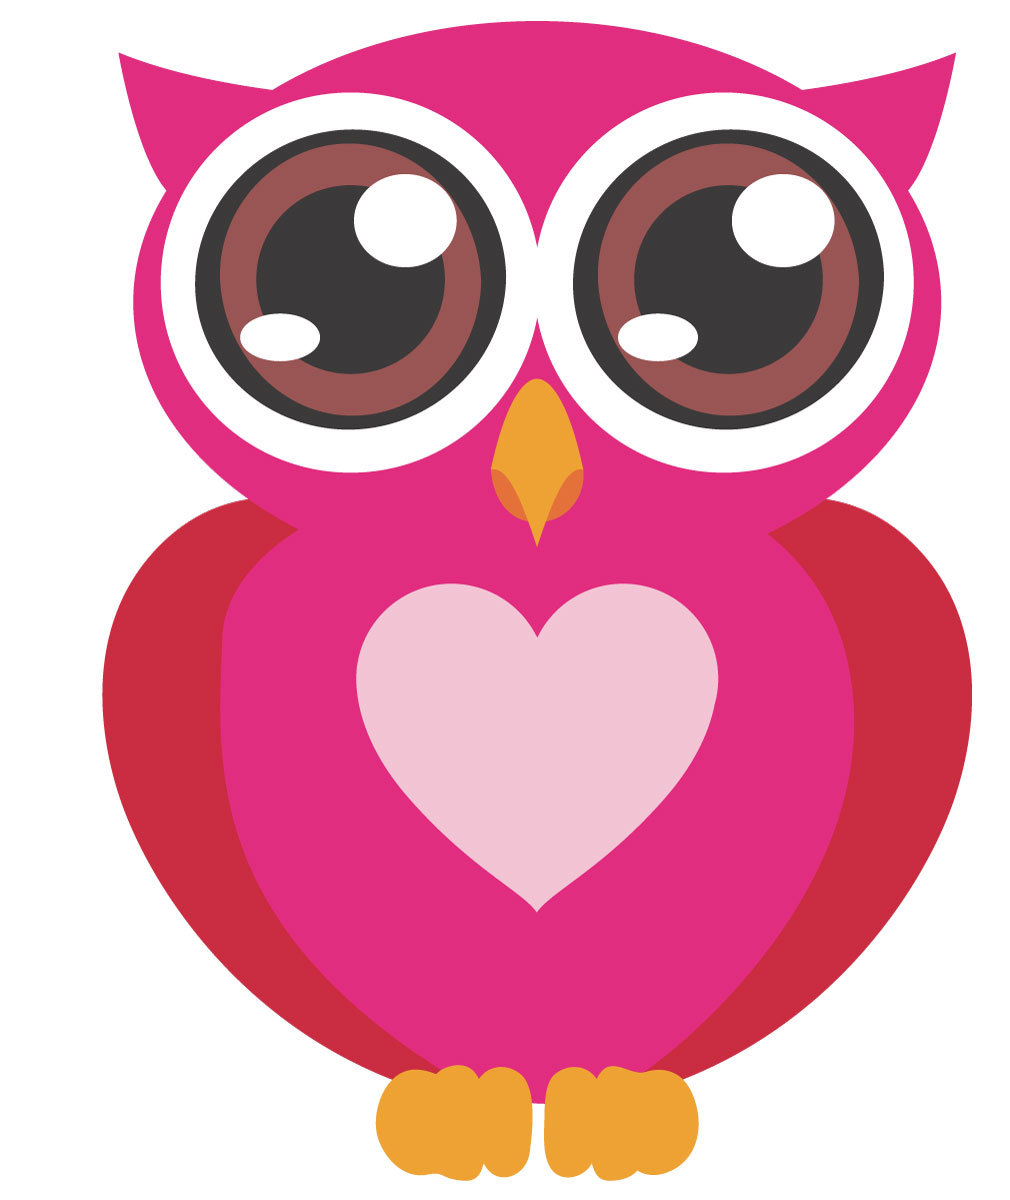 Baby girl owl clipart royalty free stock Cute baby girl owl clipart - ClipartFest royalty free stock